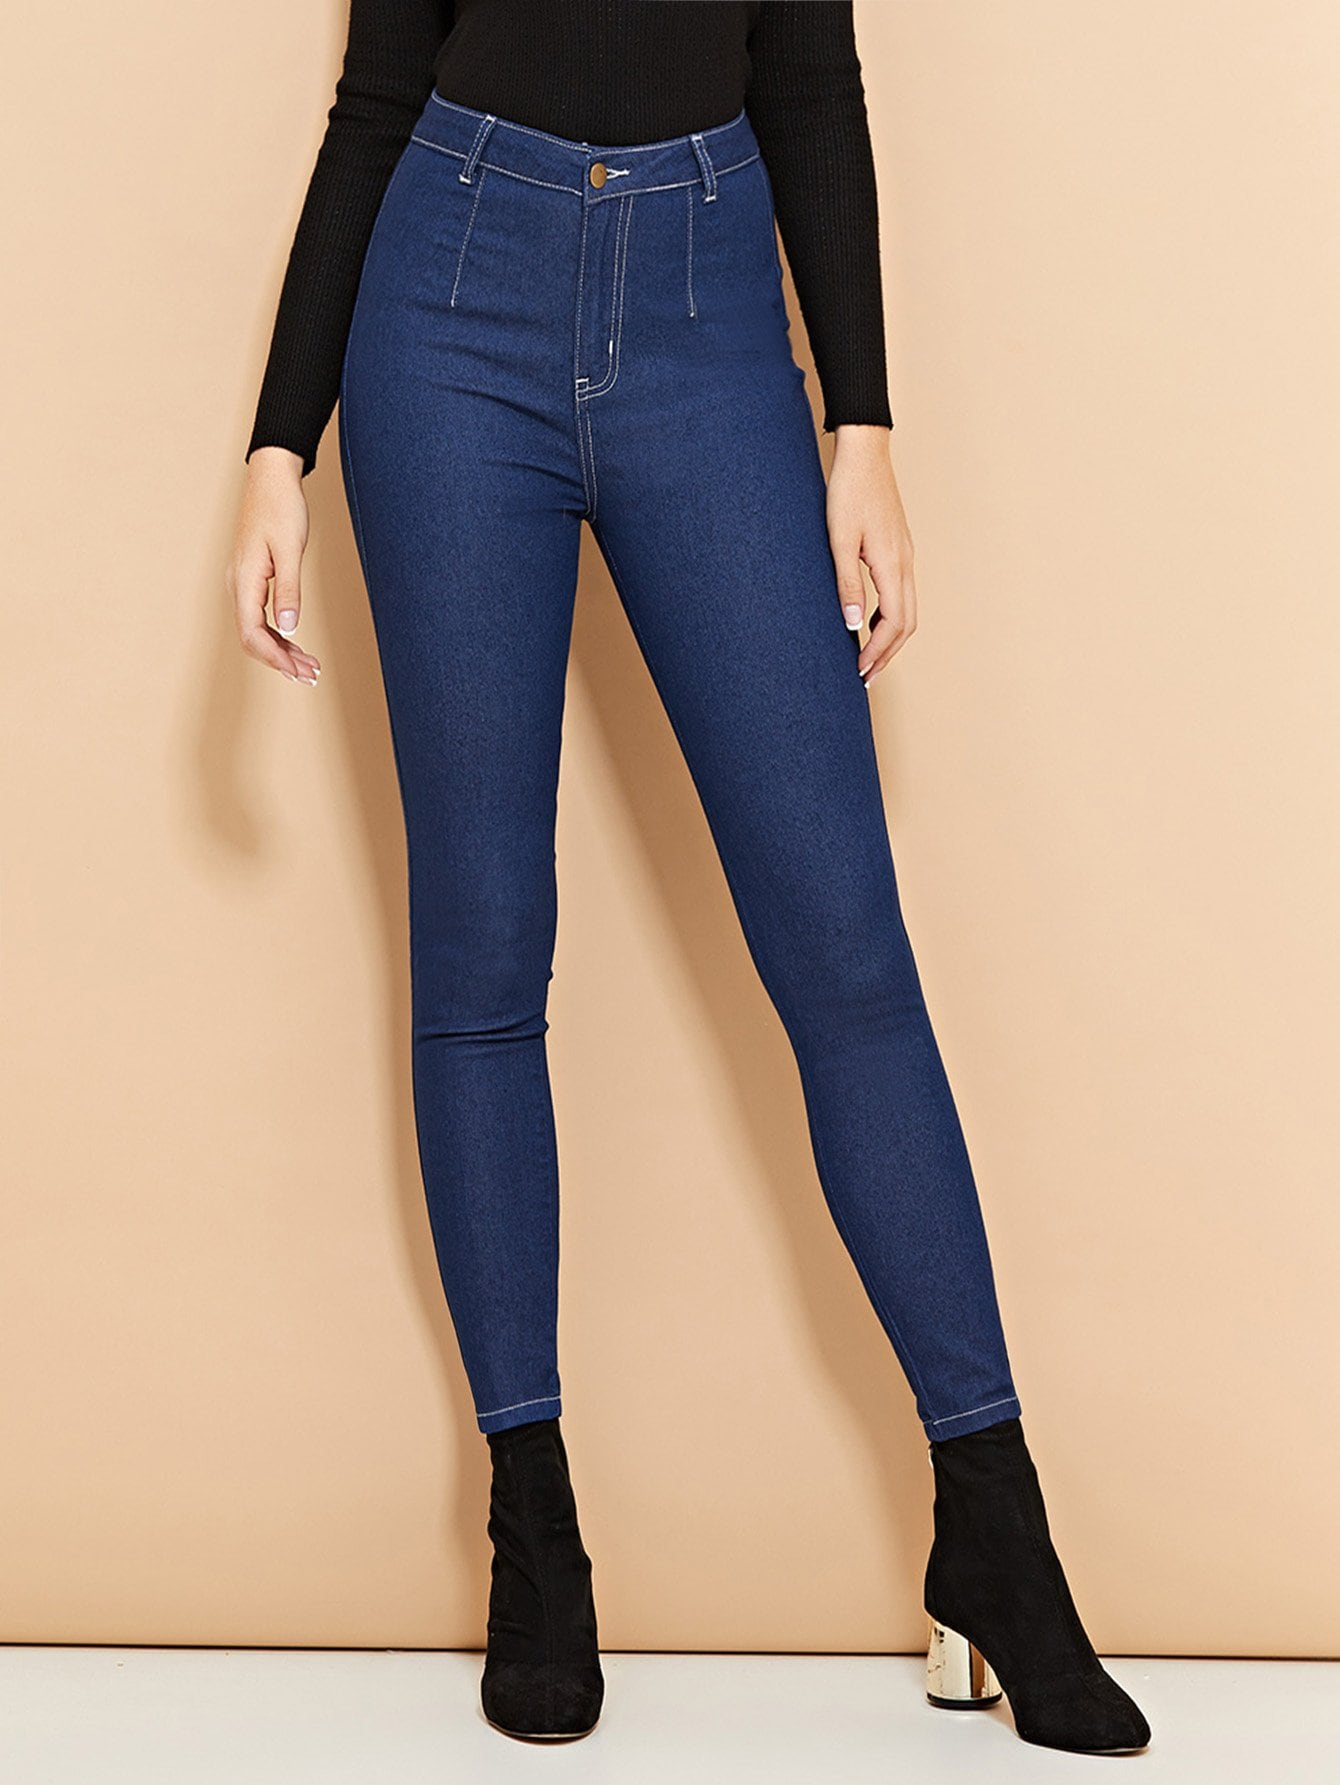 SHEIN High Waist Buttoned Skinny Jeans